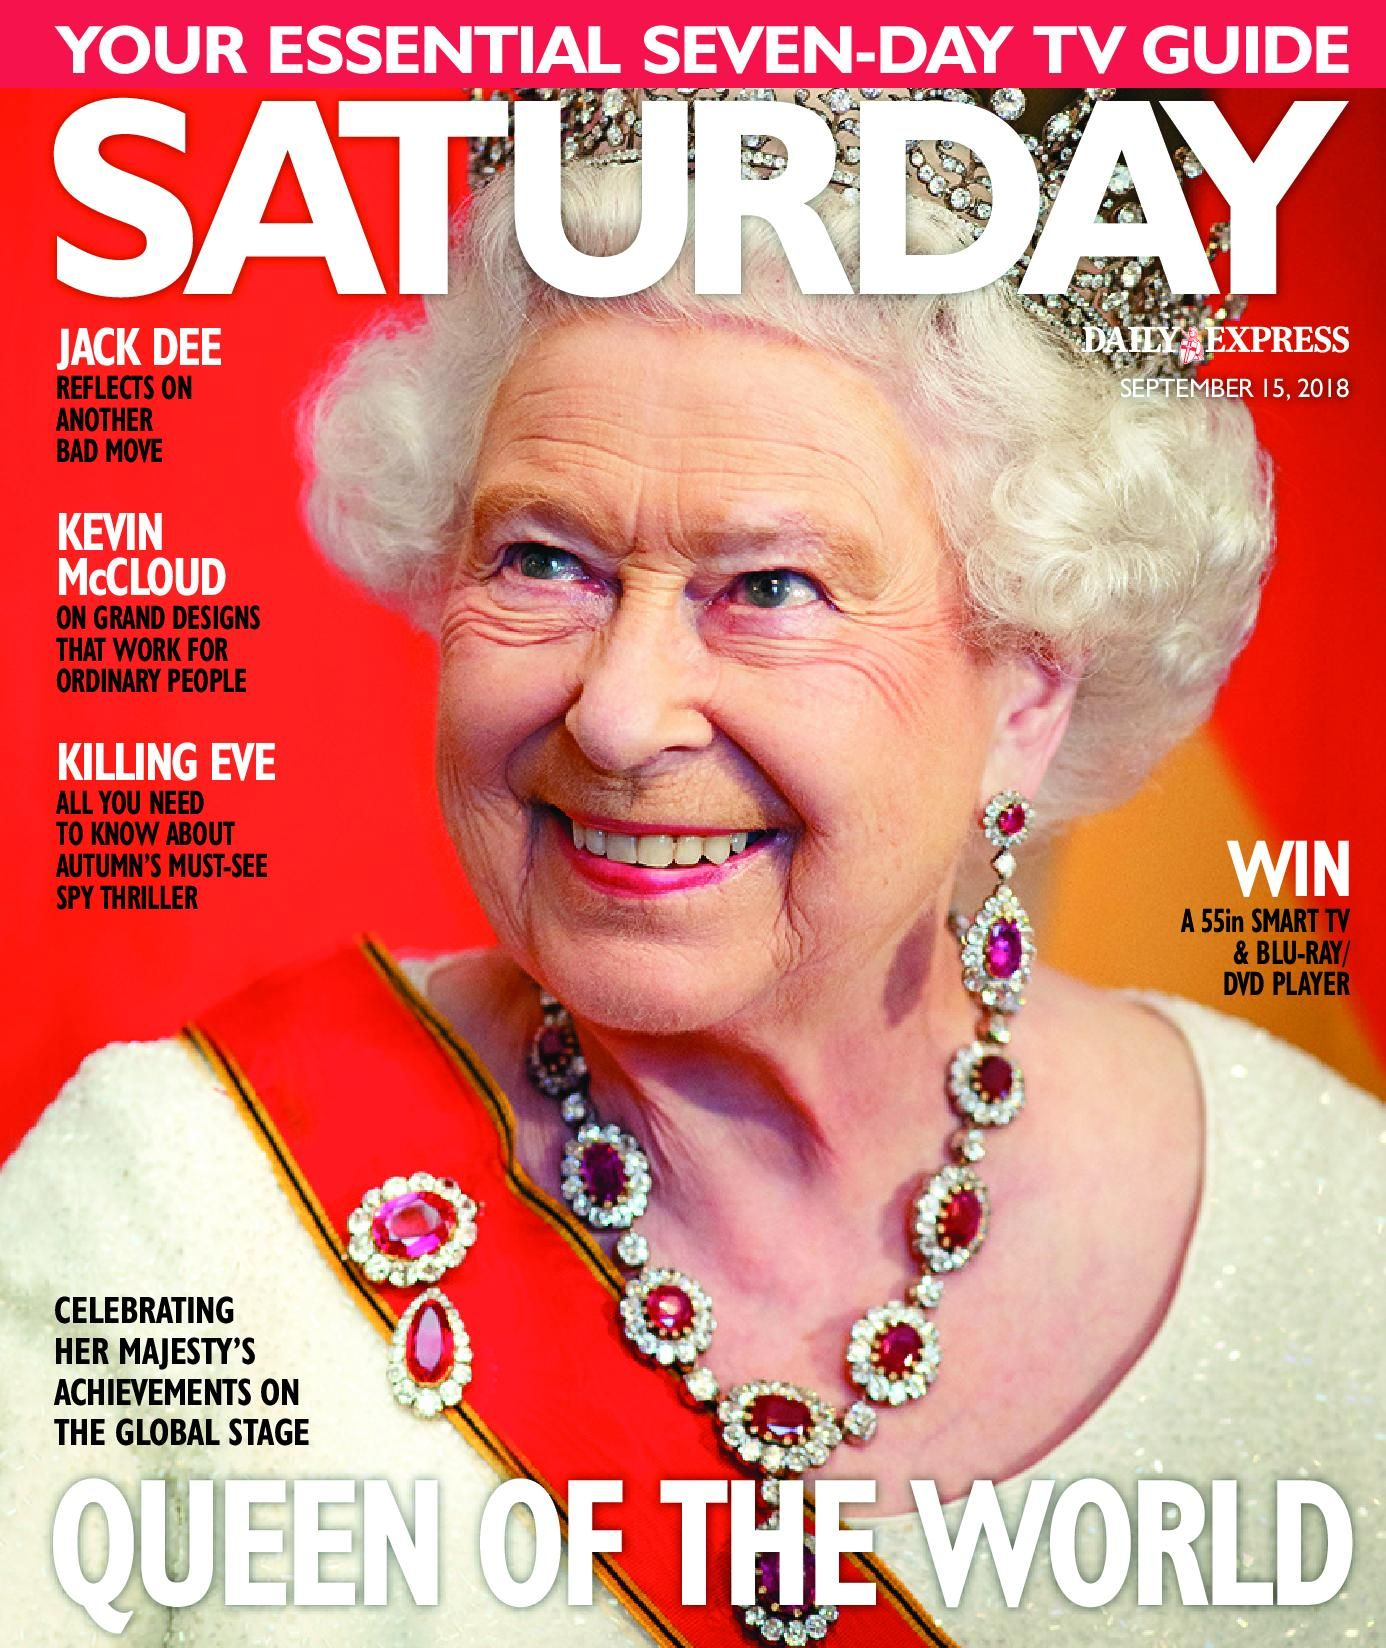 magazinelib: Queen Elizabeth on the cover of Saturday Magazine